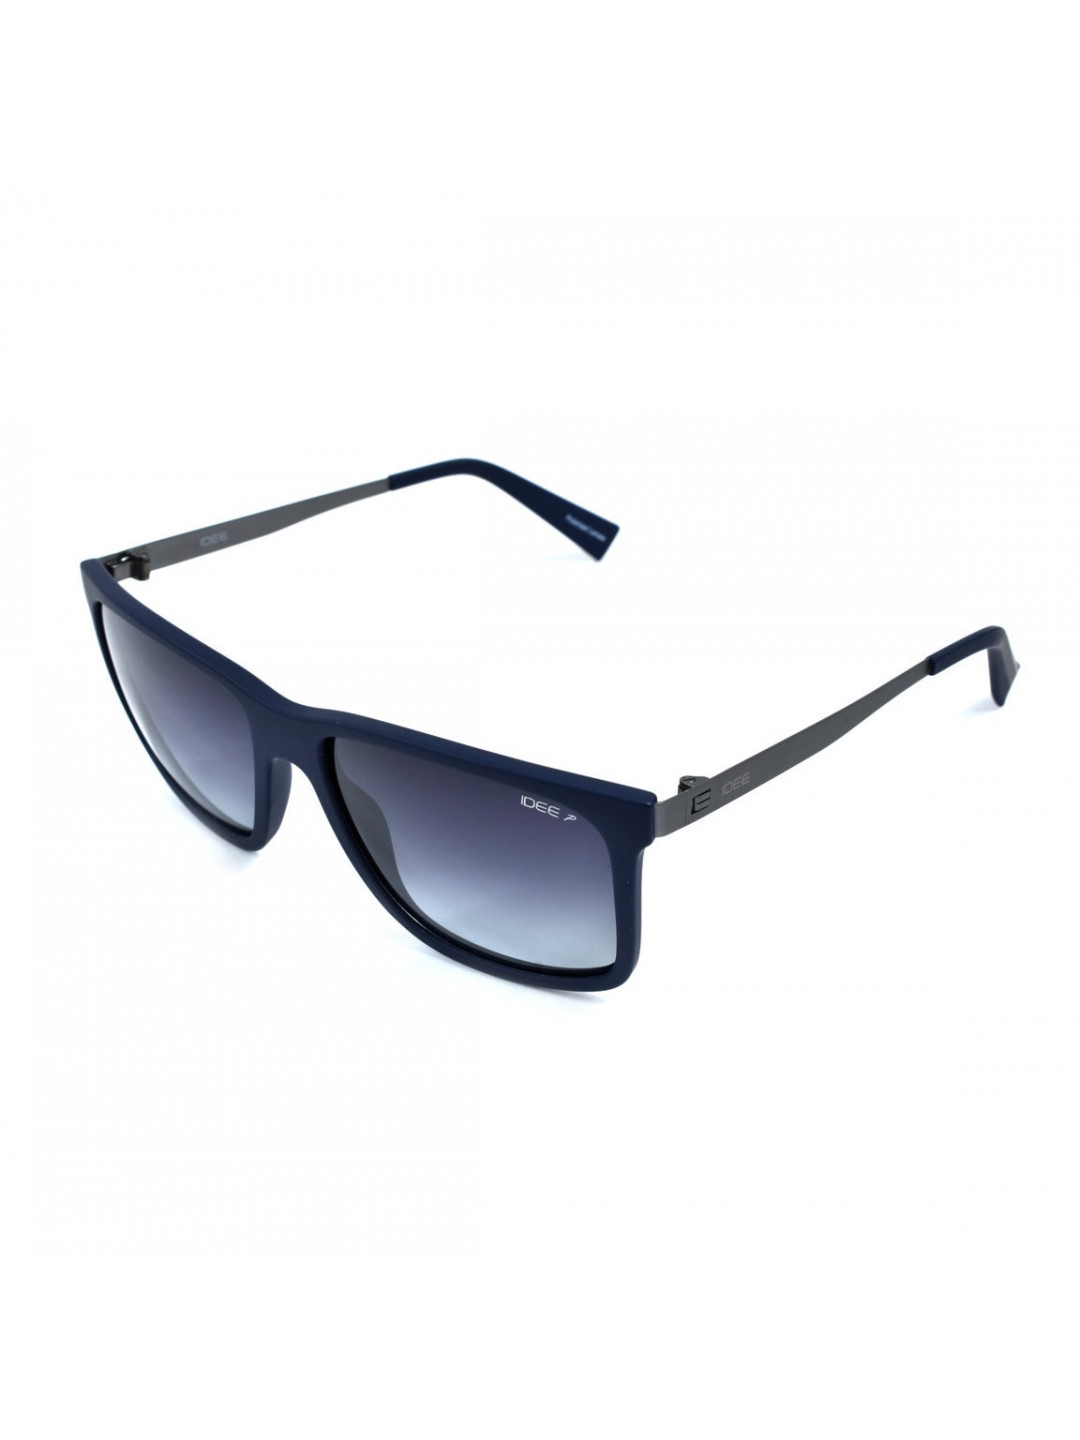 IDEE ID S 2404 C6P Navy Blue Rectangle Full Frame With Acetate